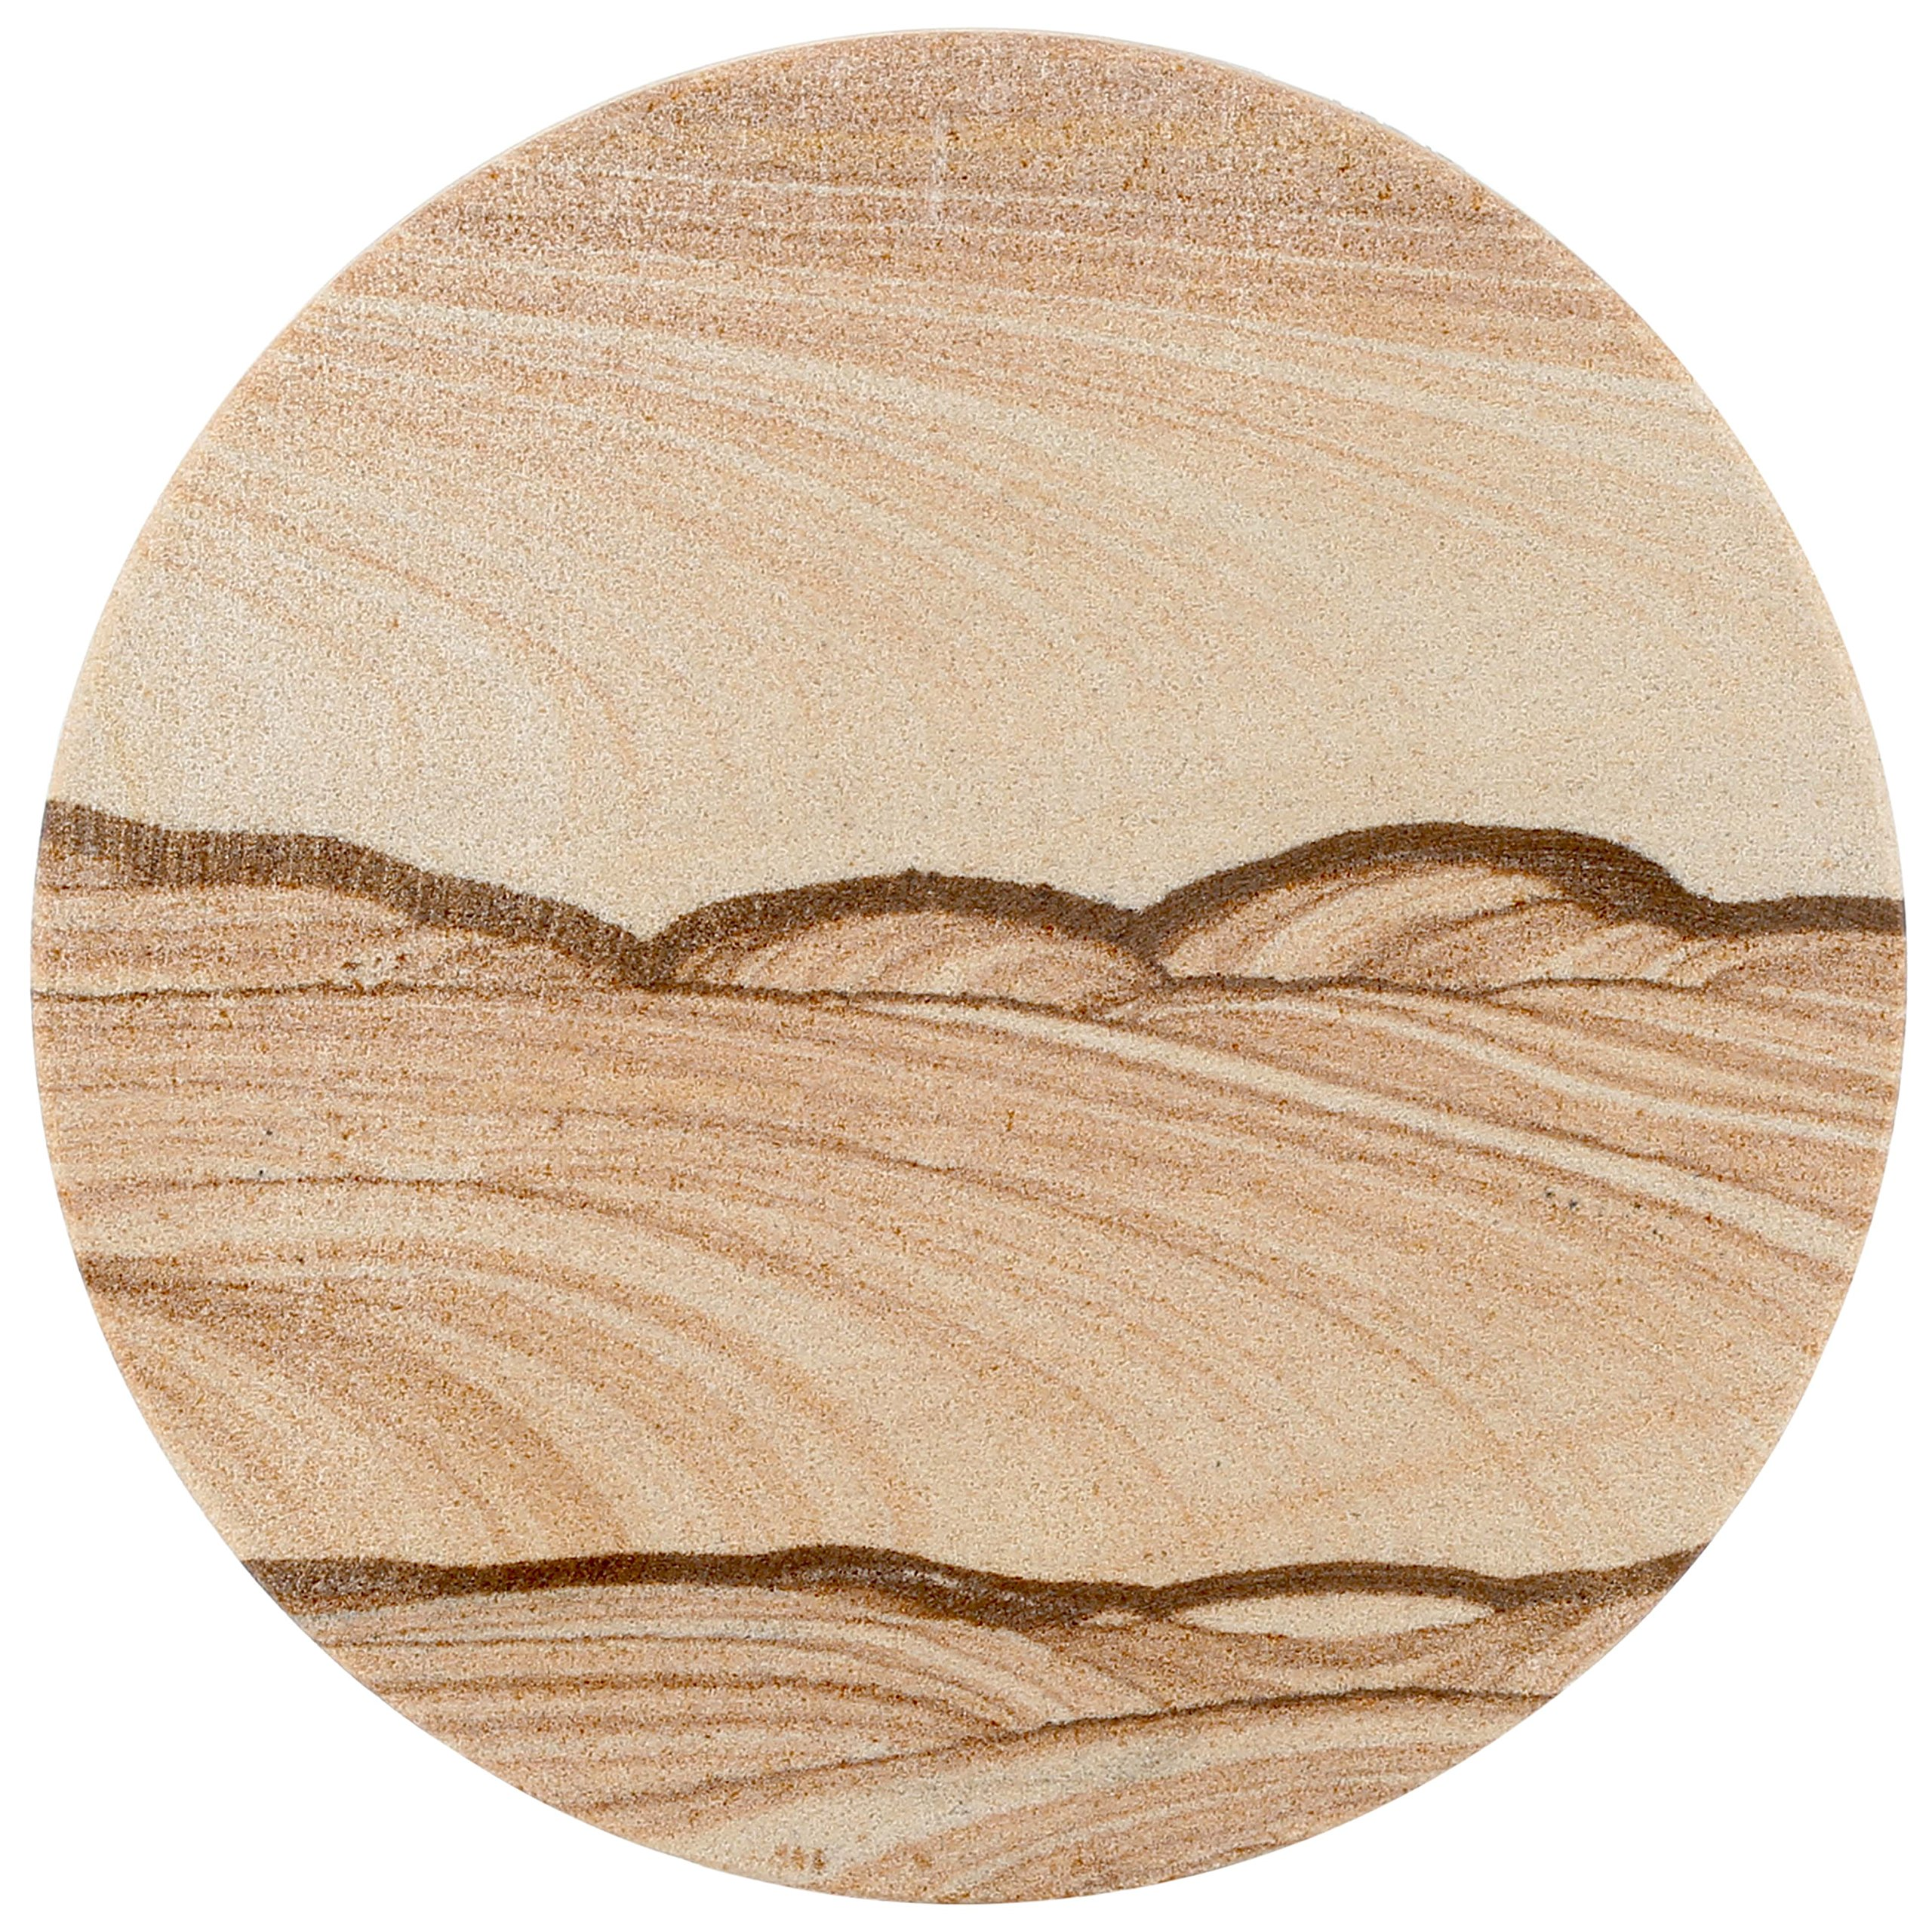 Thirstystone Drink Coasters, Tan